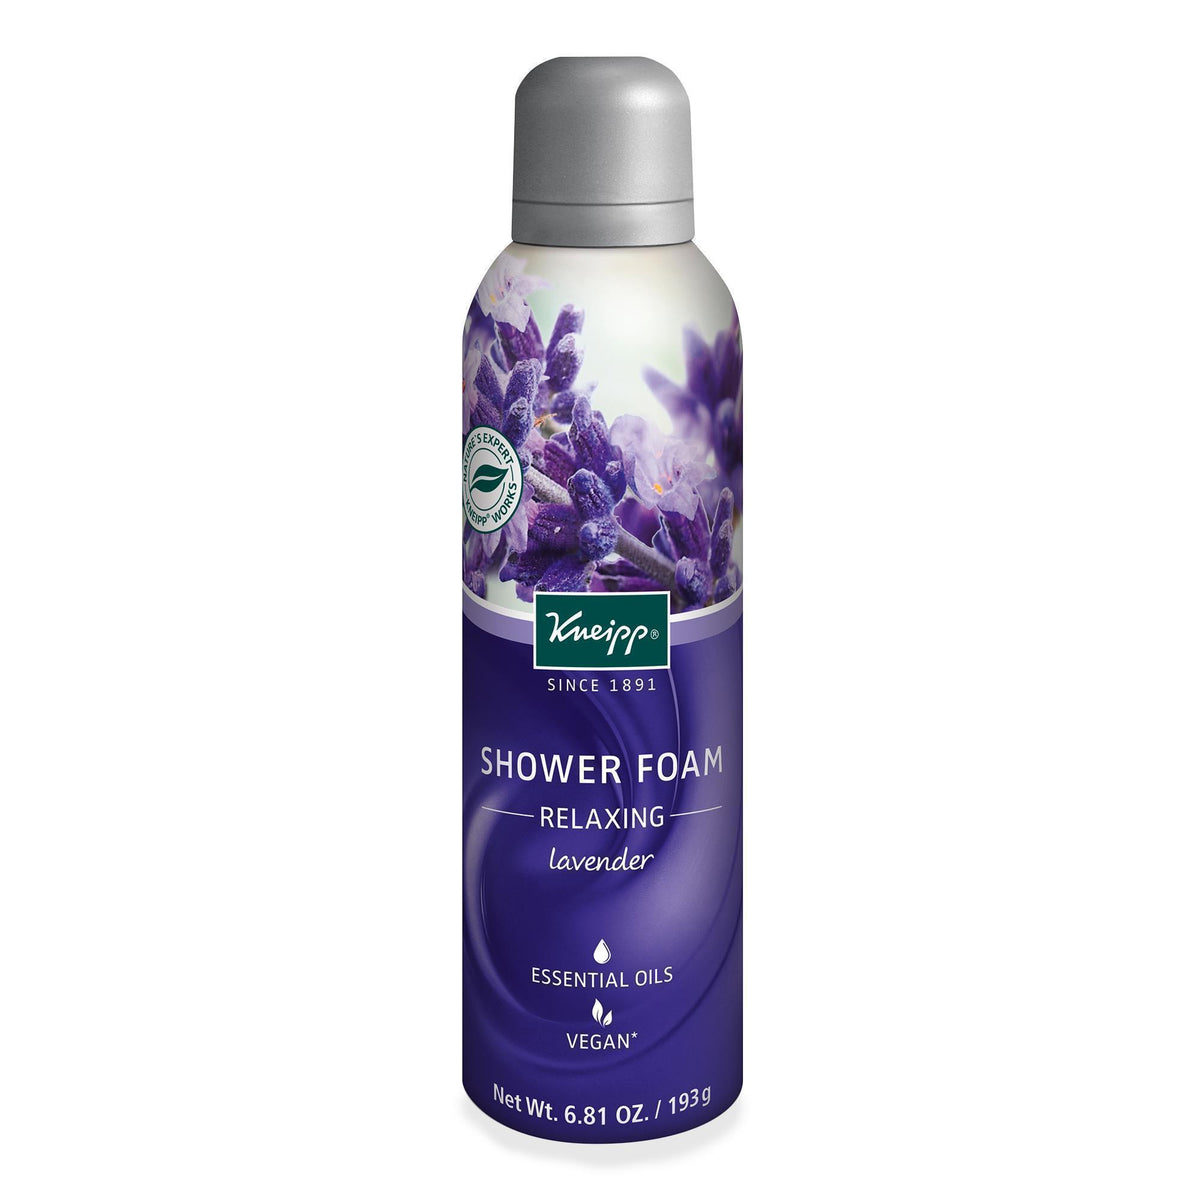 Kneipp Relaxing Shower Foam 6.81 Oz.